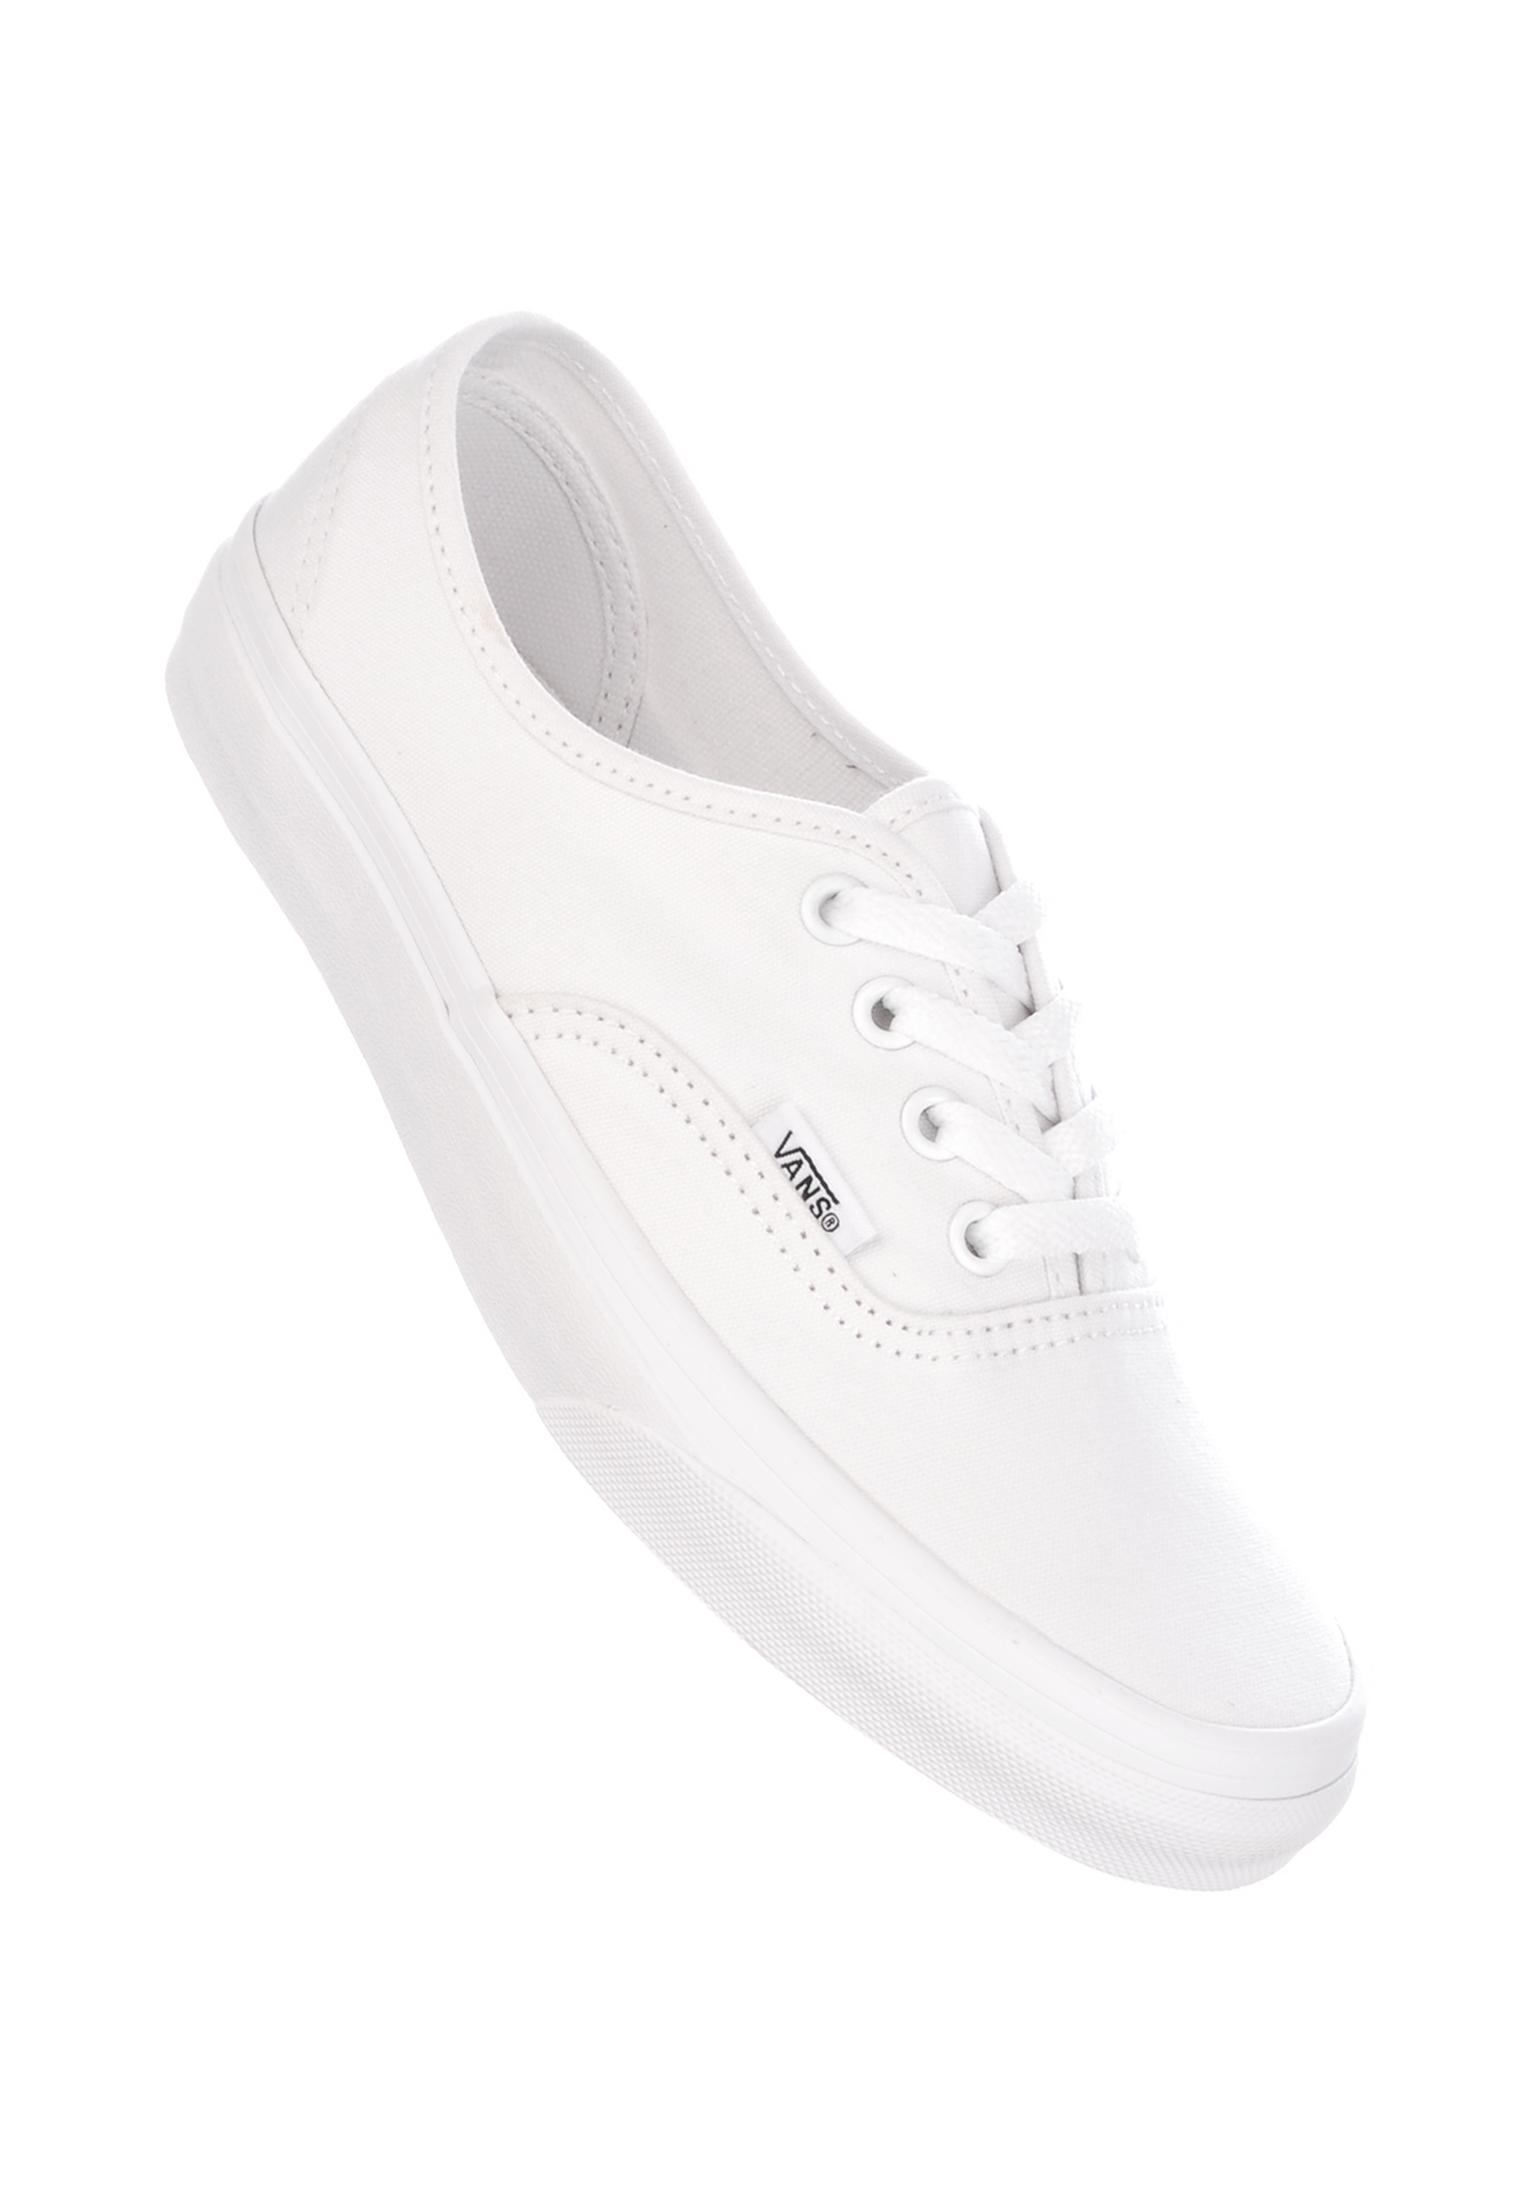 05b5af9624890d Authentic Classic Vans All Shoes in truewhite for Women